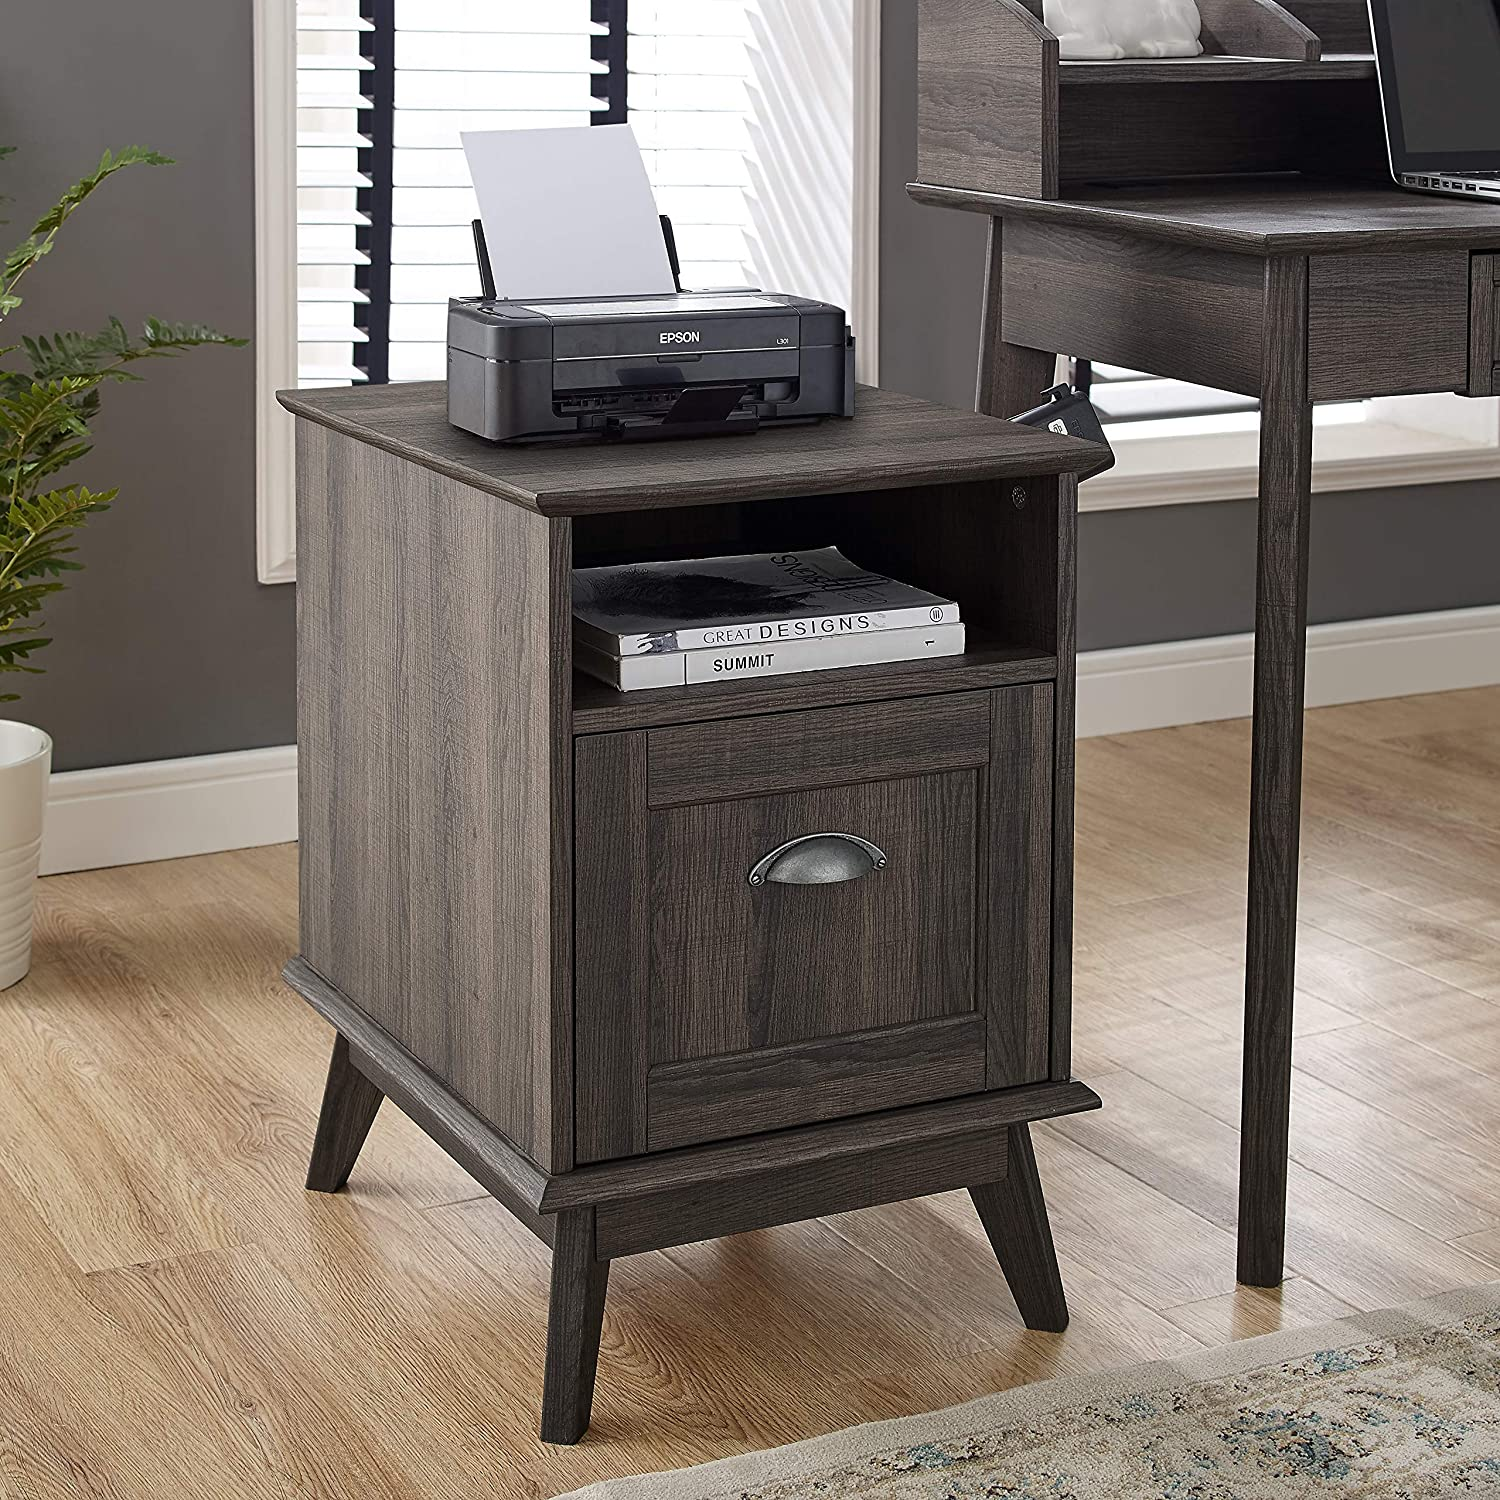 Newport Series Tall Wooden Home Office File Cabinet with Fully Extended Drawer | Side End Table | Sturdy and Stylish | Easy Assembly | Smoke Oak Wood Look Accent Living Room Furniture